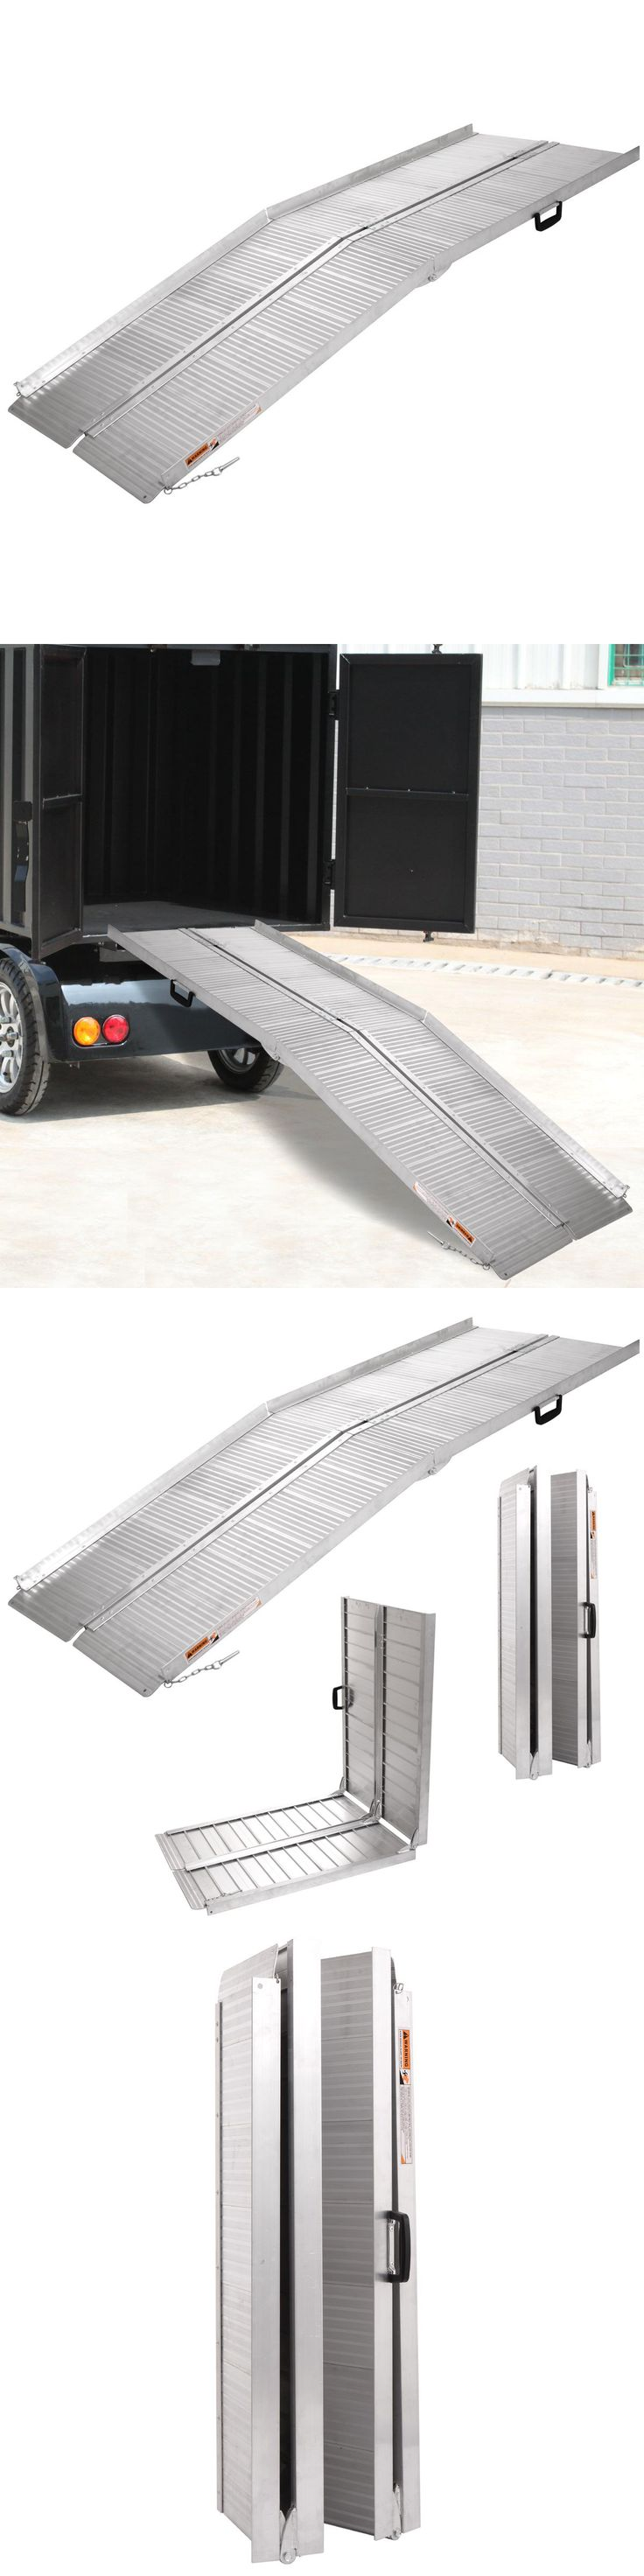 Access Ramps: 10 Folding Portable Mobility Handicap Suitcase Wheelchair Threshold Ramp BUY IT NOW ONLY: $229.9